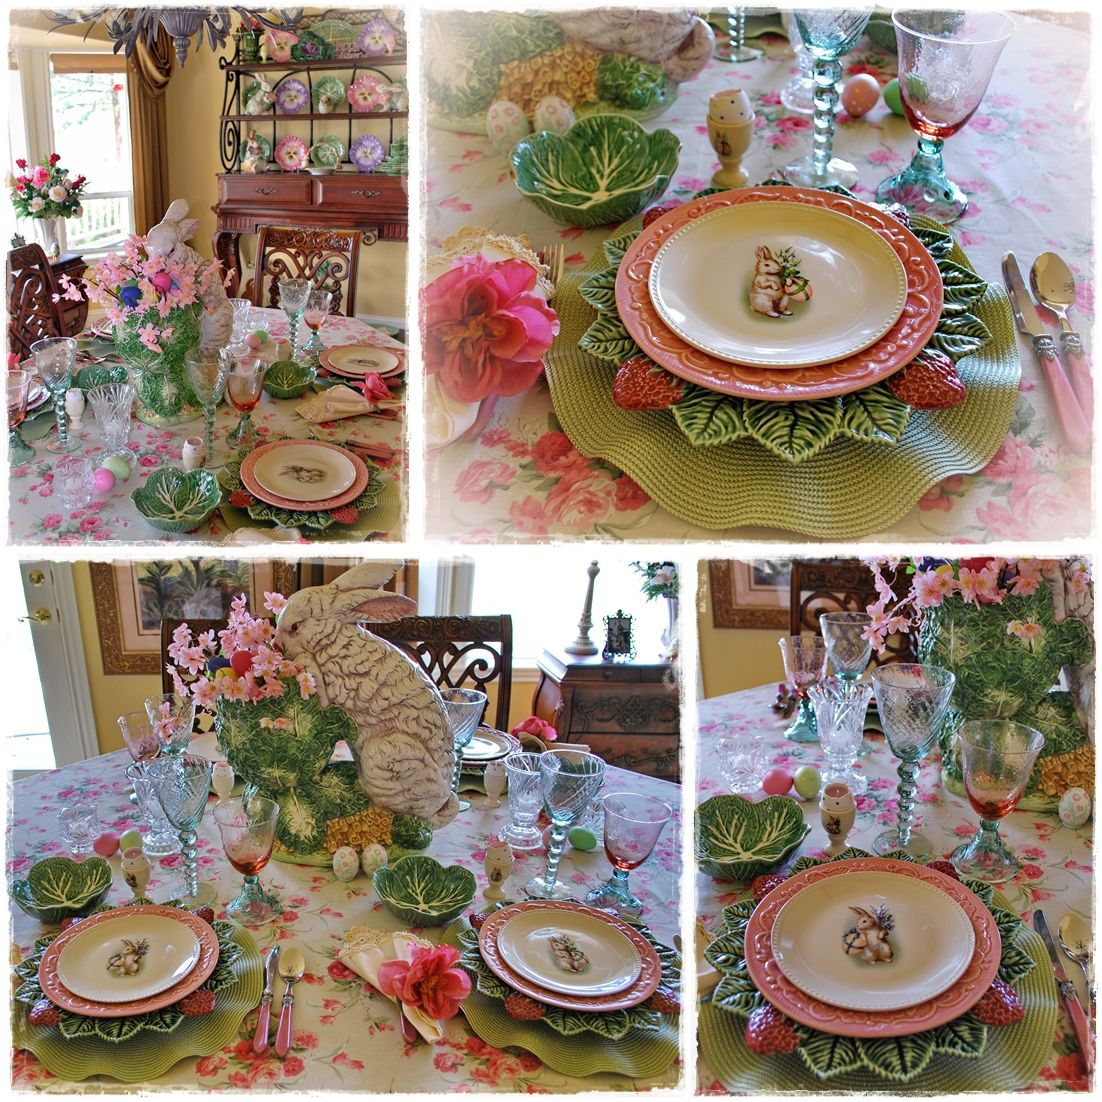 Easter Tablescape in 2019 Easter table decorations